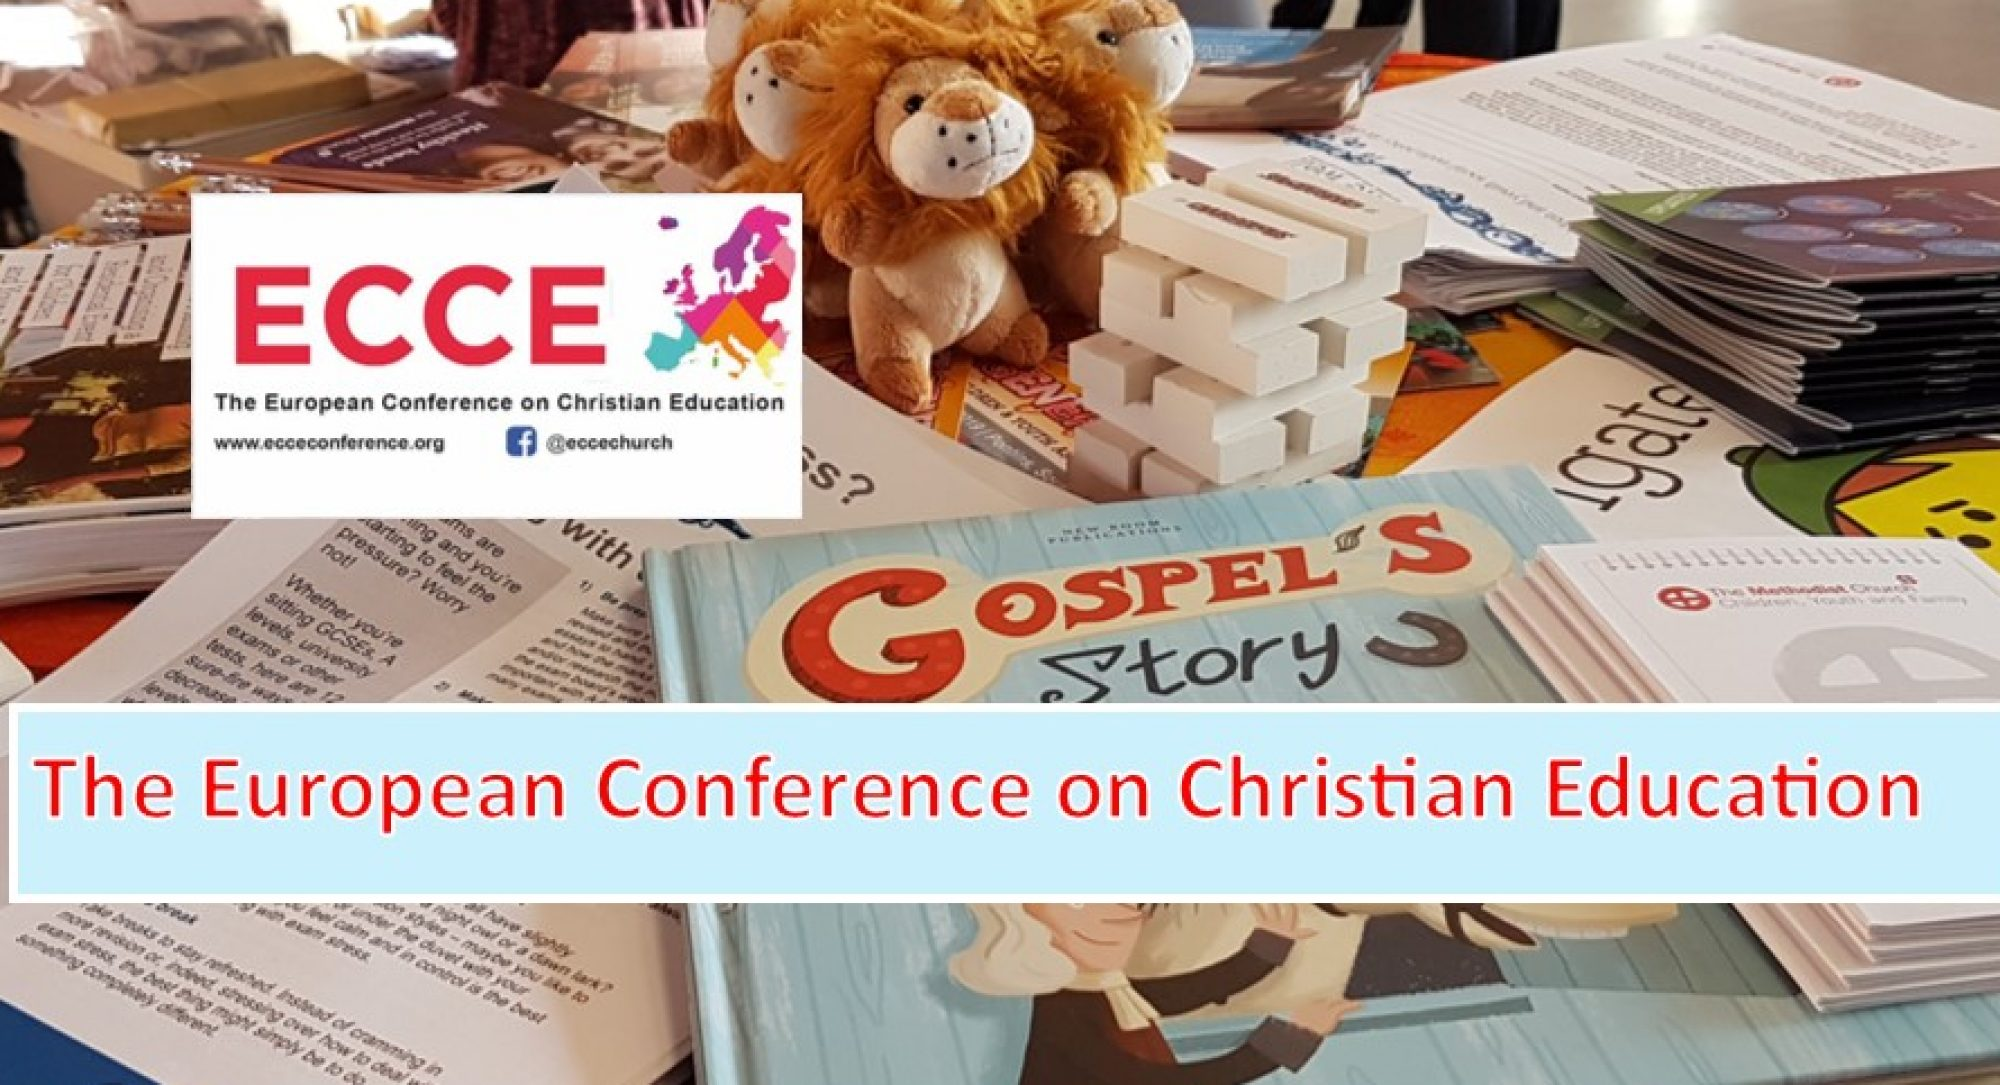 European Conference on Christian Education (ECCE)